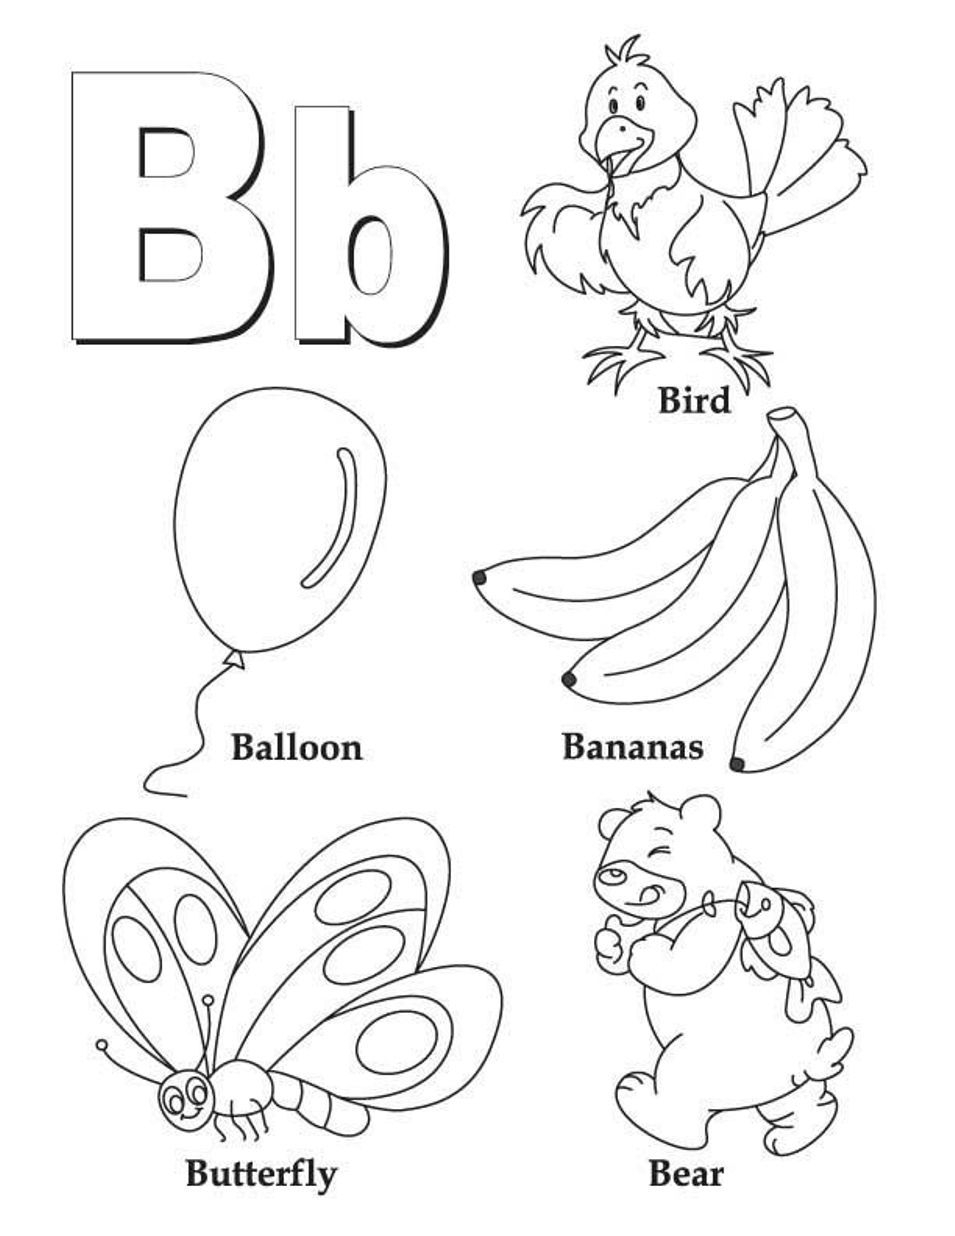 Letter B Coloring Pages - Preschool And Kindergarten within Letter B Worksheets Printable